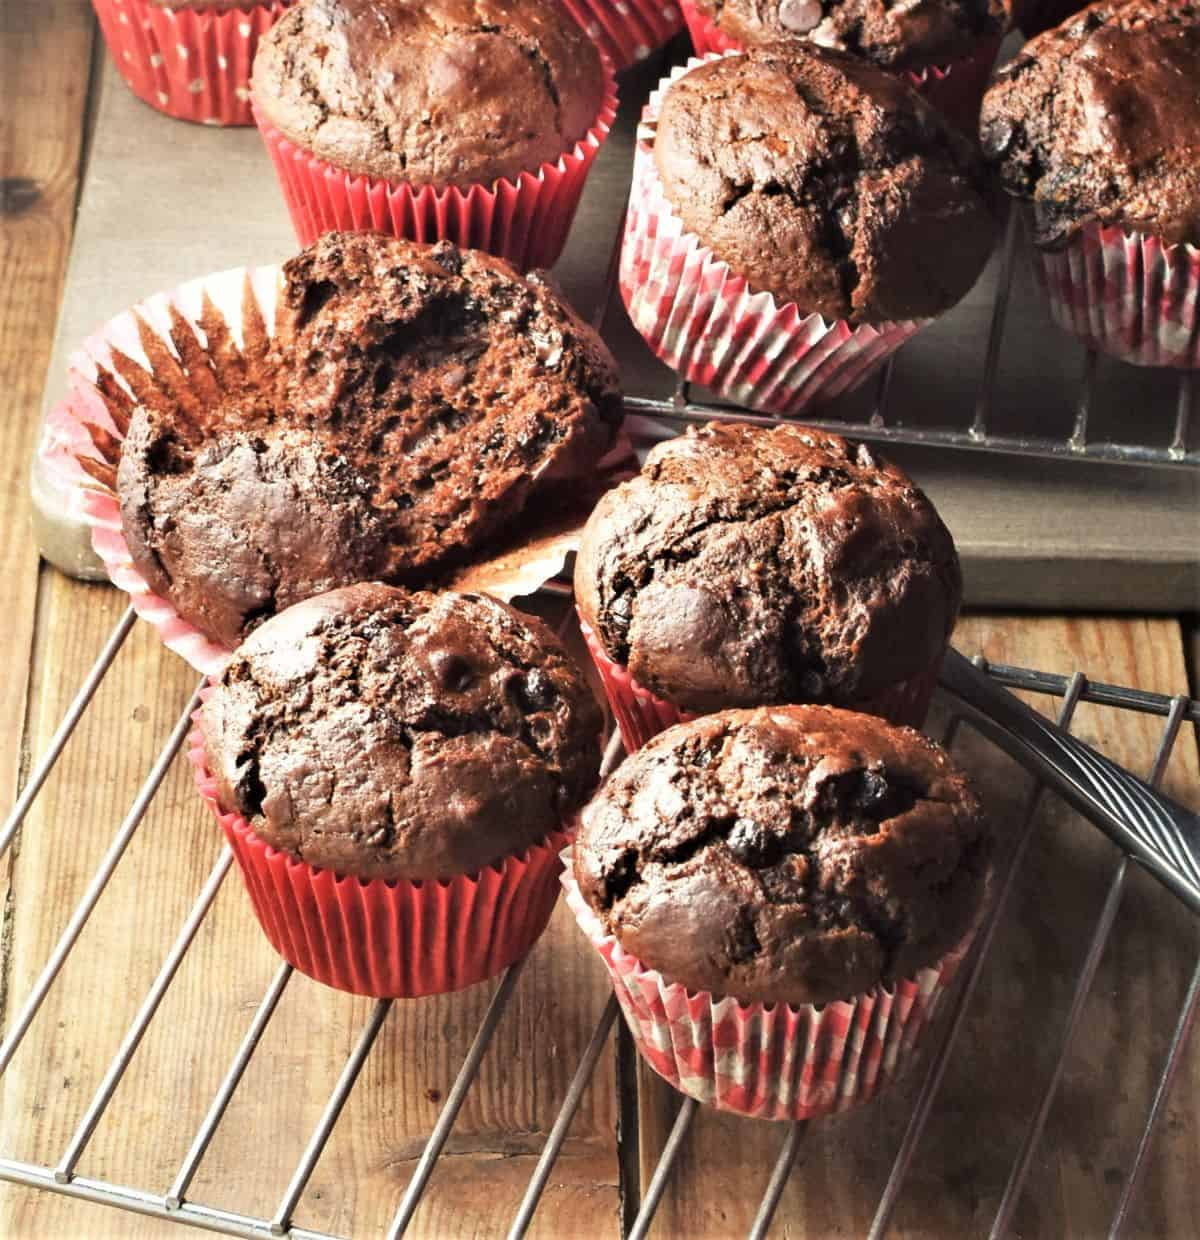 Chocolate muffins in red paper liners on top of rack and board.